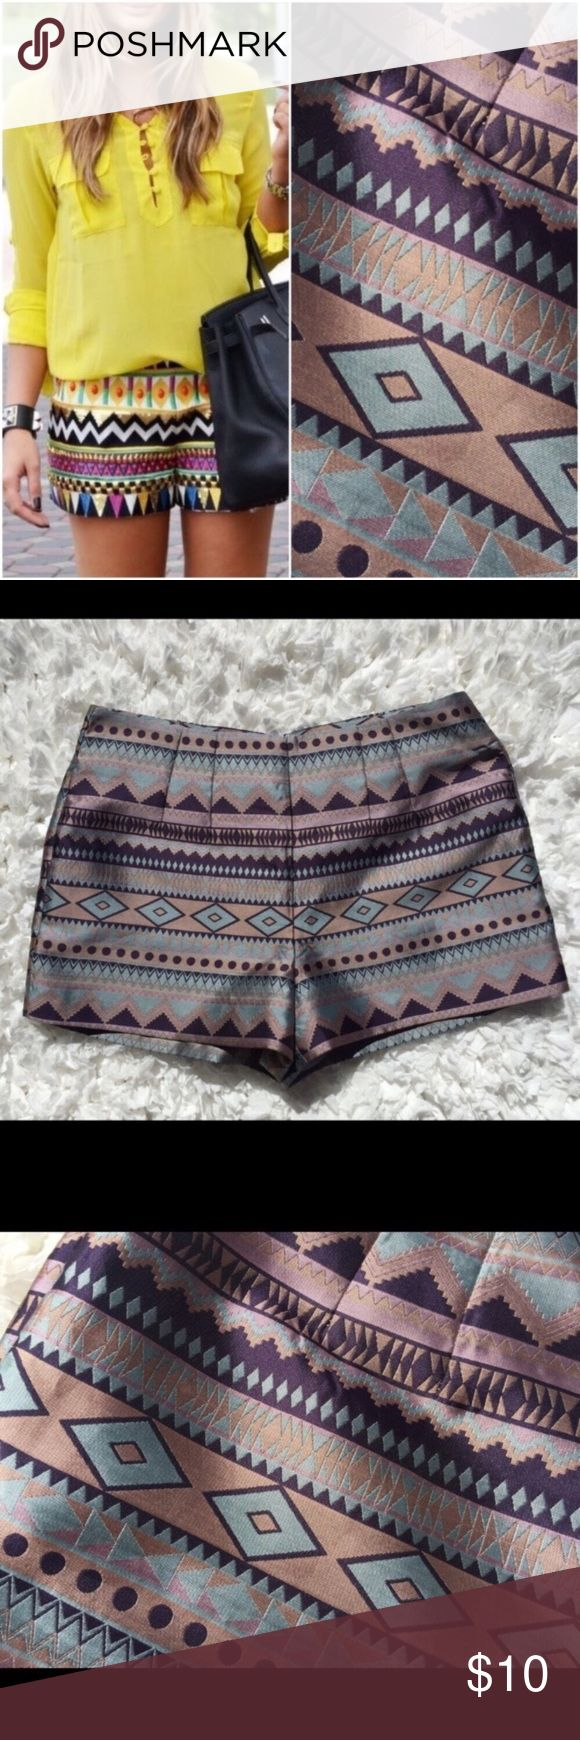 """Love 21 Aztec Tribal Festival Print Dress Shorts {Love 21} Aztec Tribal Festival Print Dress Shorts  Gorgeous Love 21 Aztec Tribal Print Dressy Shorts size S. Shorts are lined. Zips up back and has hook/eye closure. Waist approx 30"""". Style photo is not mine and is for style suggestions only. Love 21 Shorts"""